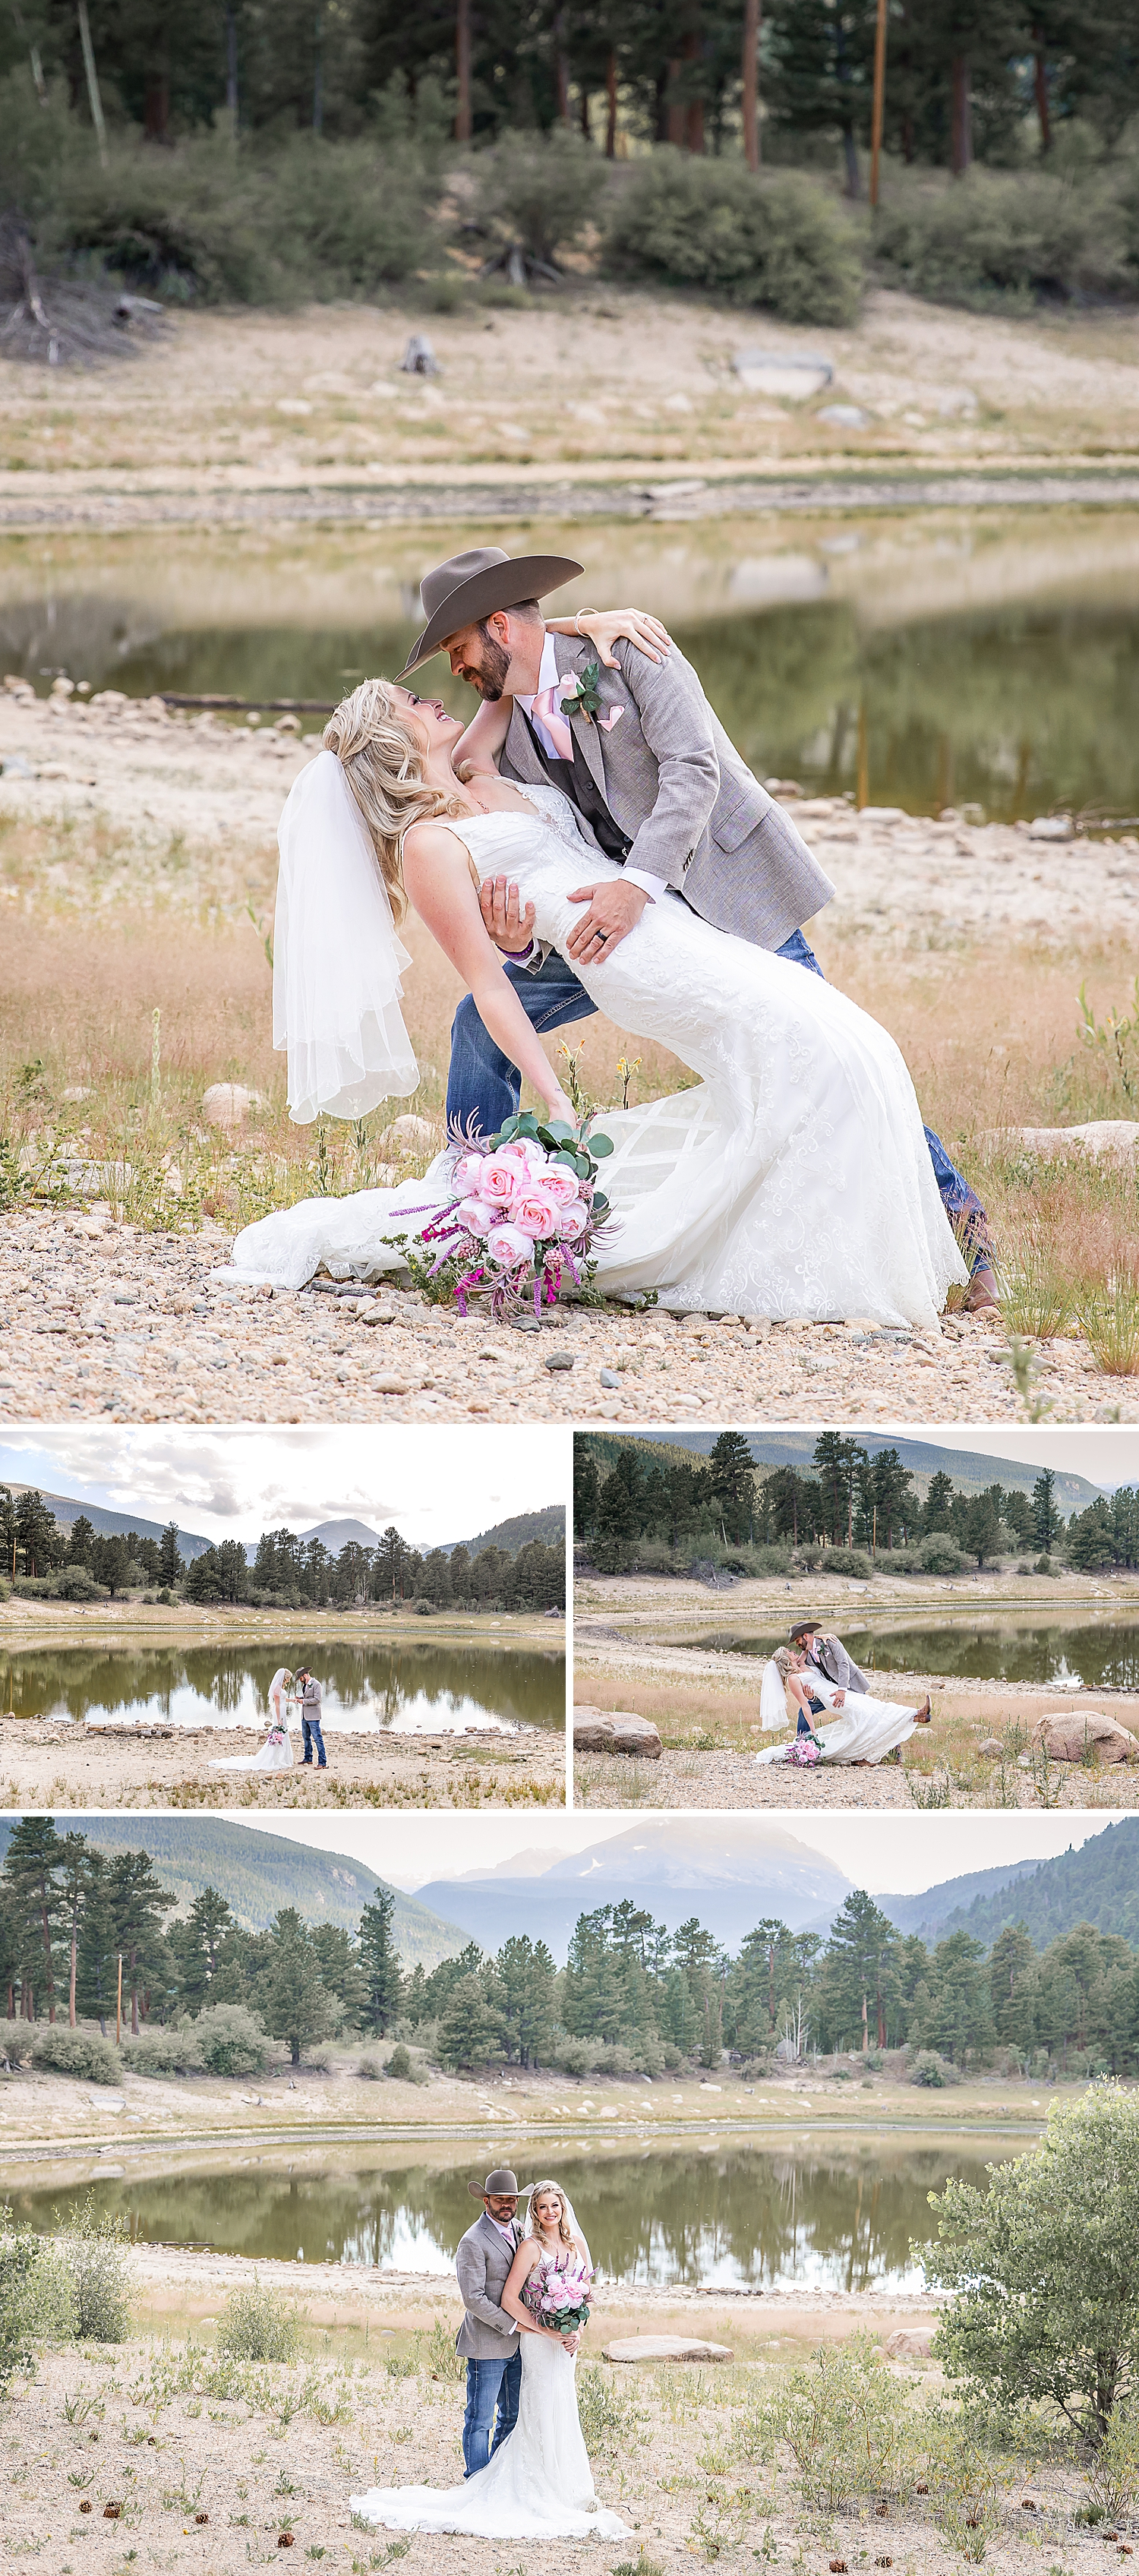 Carly-Barton-Photography-Rocky-Mountain-National-Park-Estes-Park-Wedding-Elopement_0032.jpg